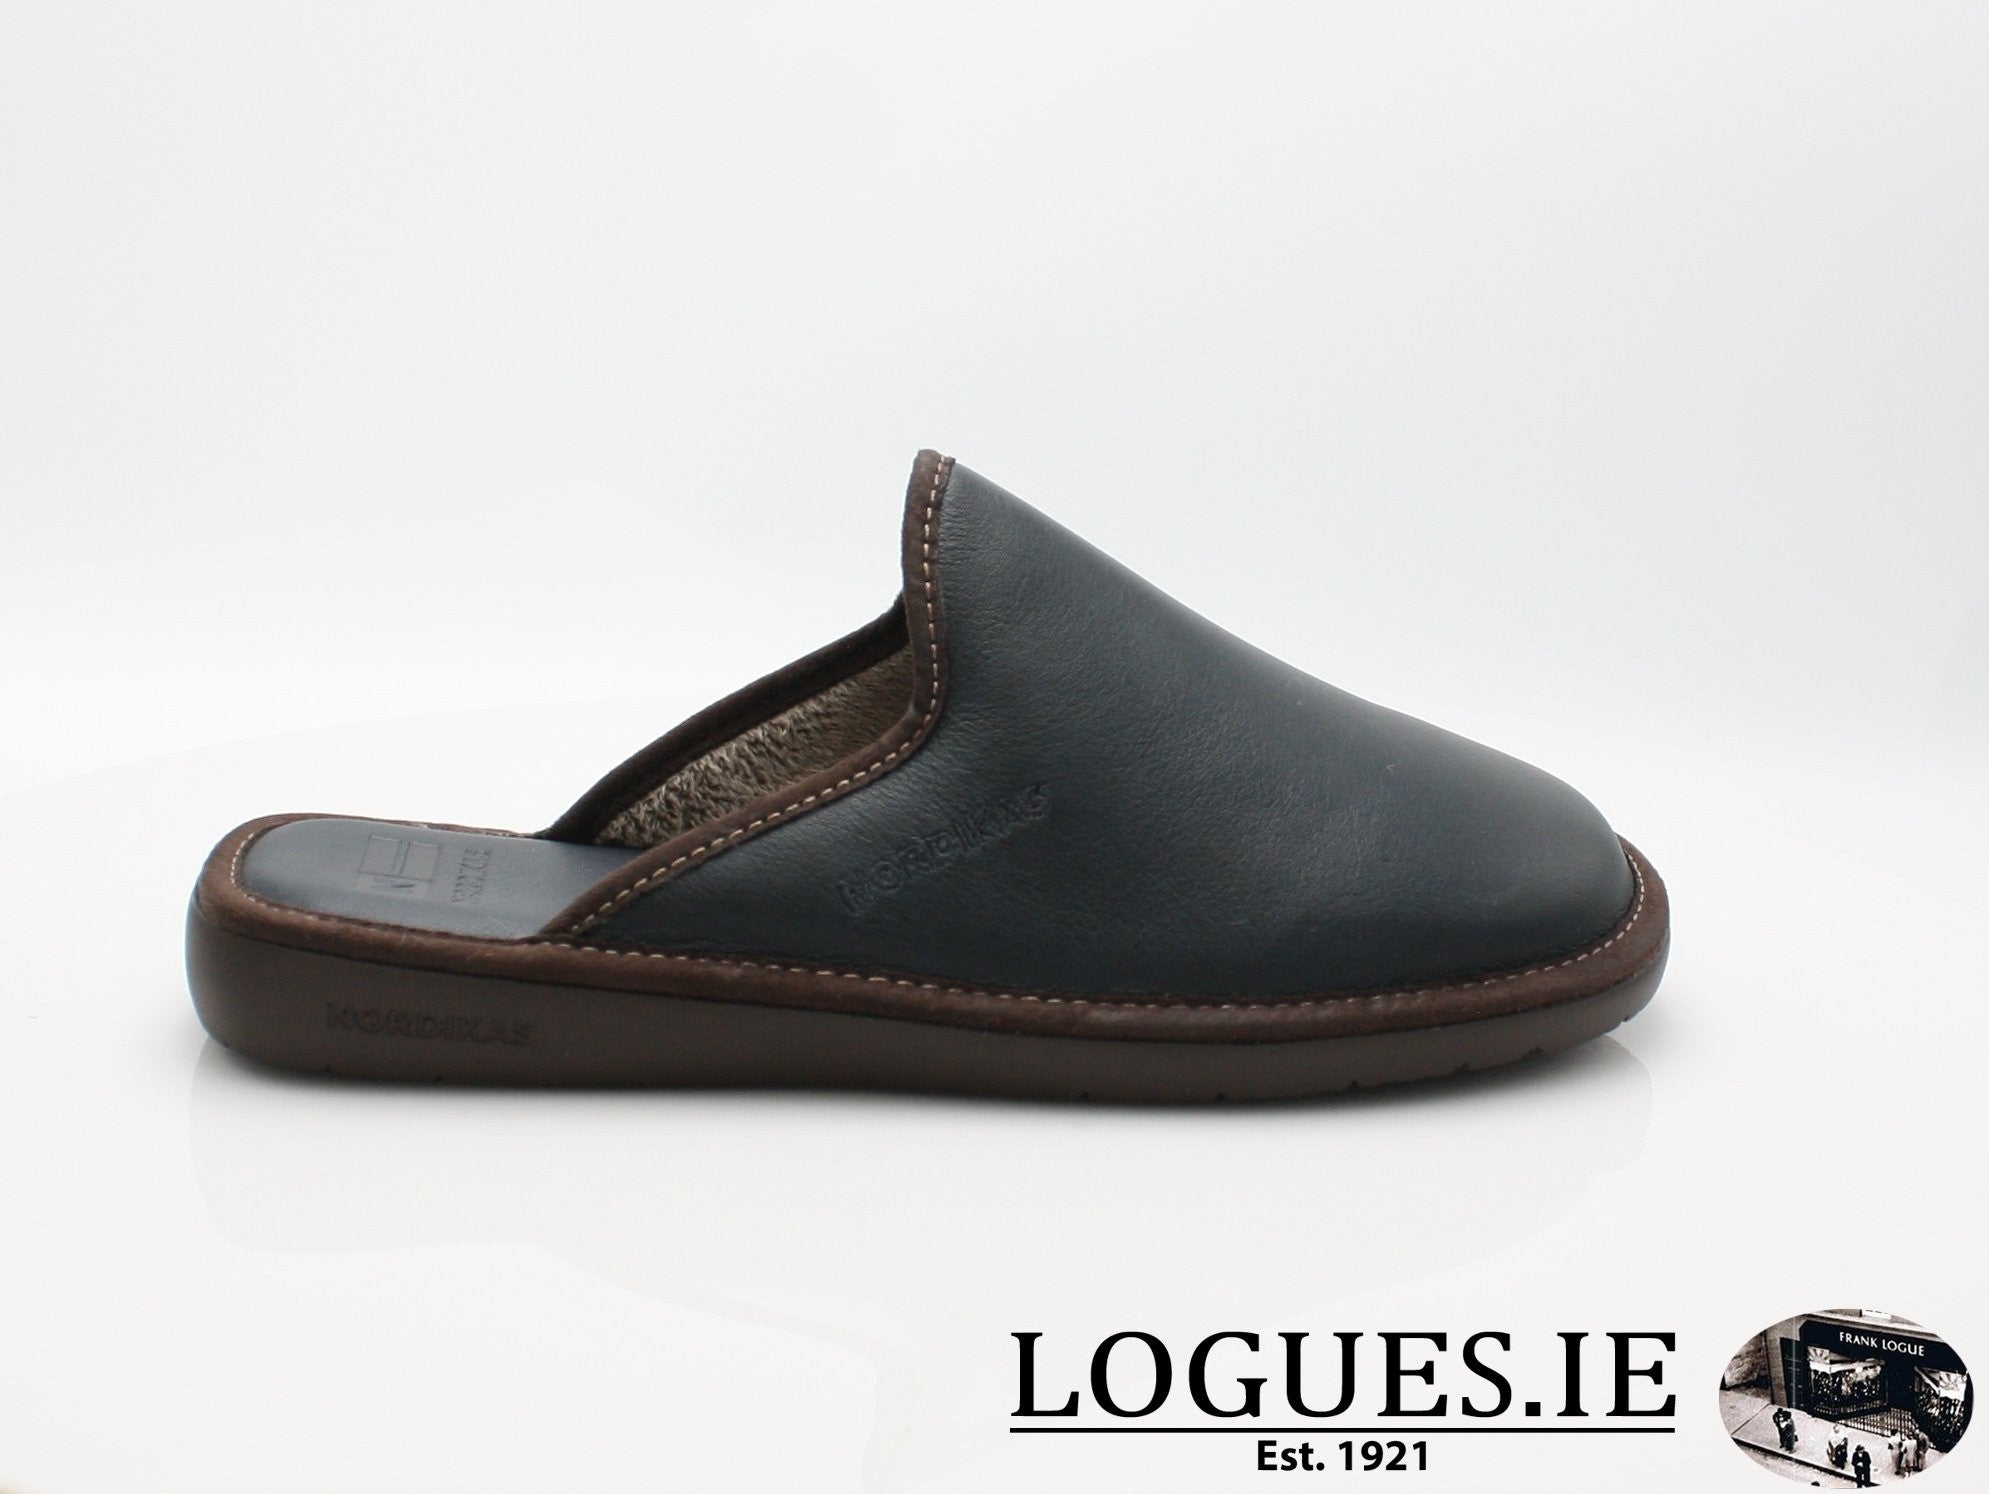 ac9af09e6d4fe 131 NORDIKAS, Mens, nordikas / Sabrinas, Logues Shoes - Logues Shoes.ie.  131 NORDIKAS, Mens, nordikas / Sabrinas, Logues Shoes - Logues Shoes.ie